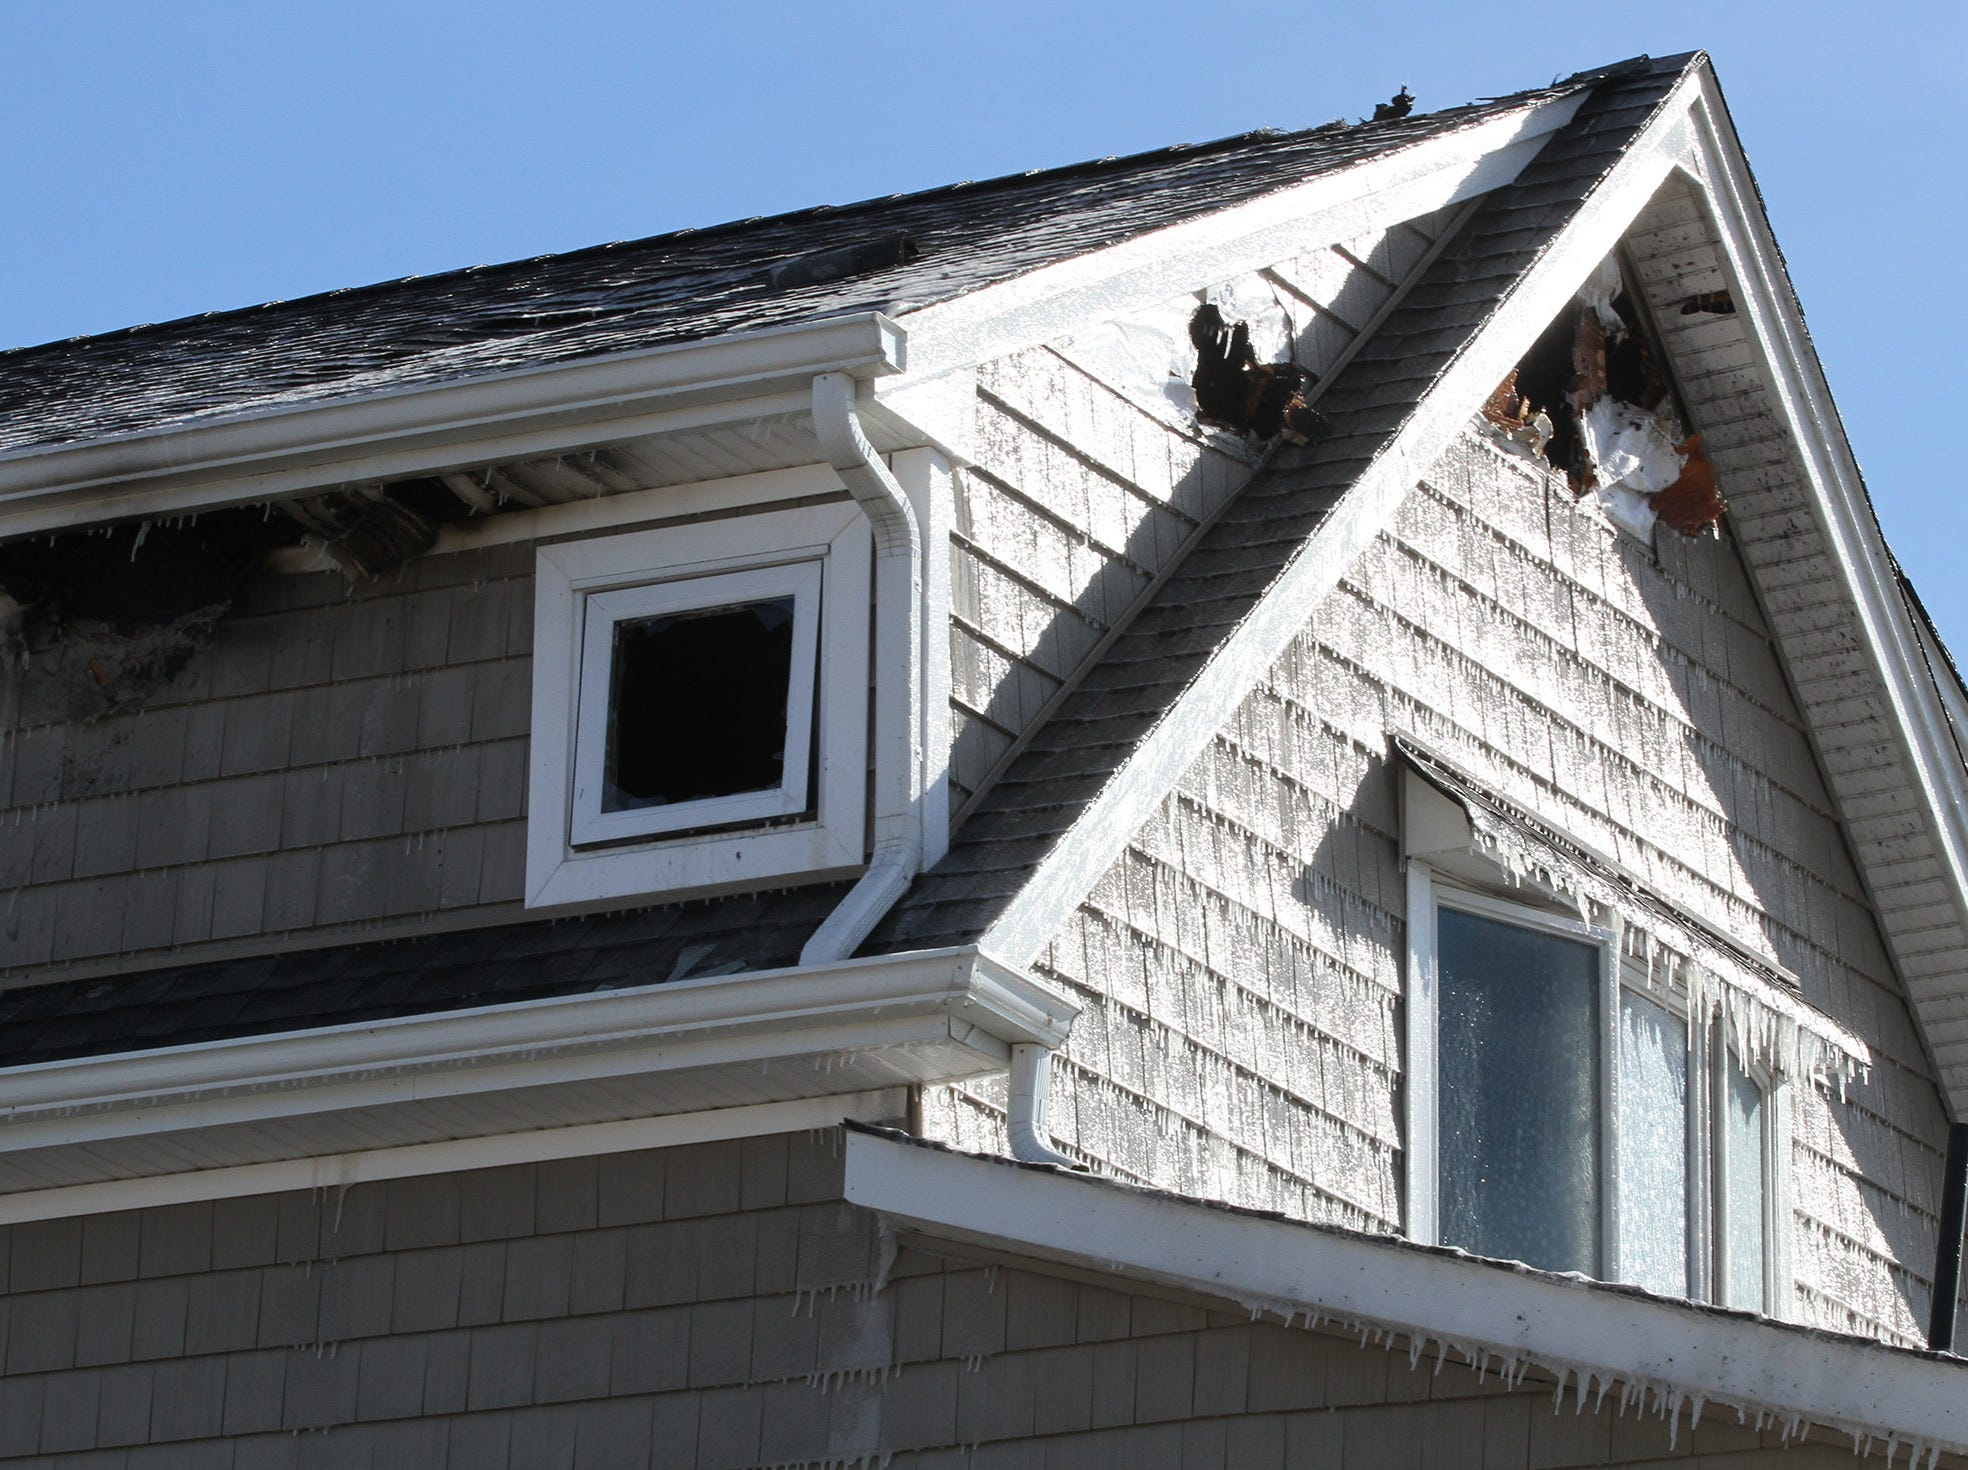 Ice covers the siding after a fire at a residence next to Point Lobster Company in the Point Pleasant Beach Monday afternoon, January 21, 2019.